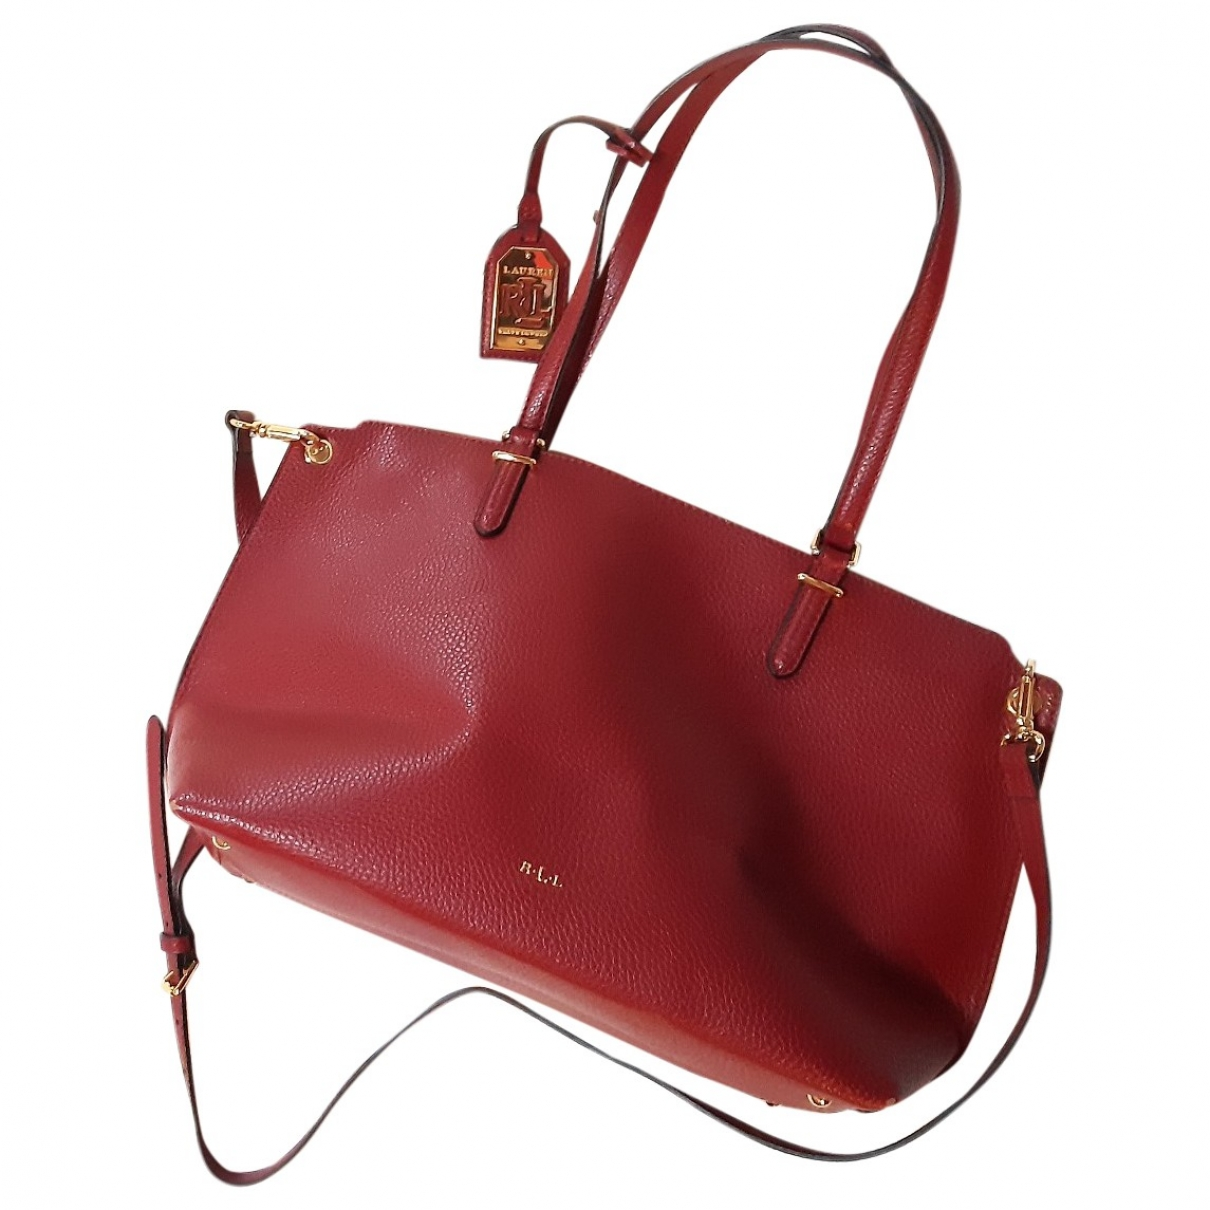 Lauren Ralph Lauren \N Red Leather handbag for Women \N